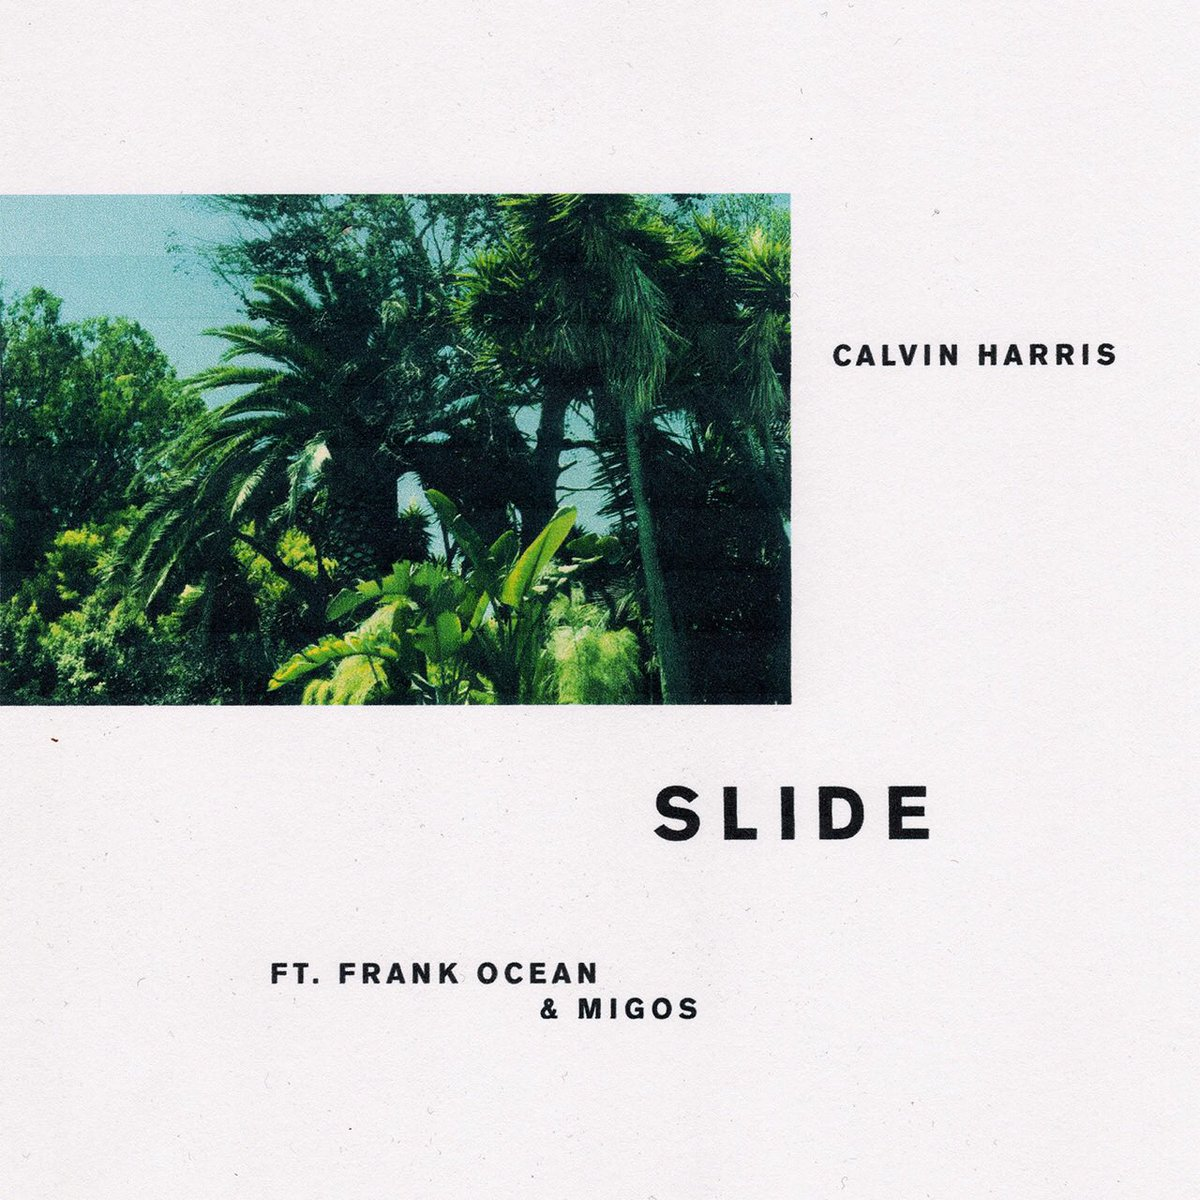 calvin harris : slide